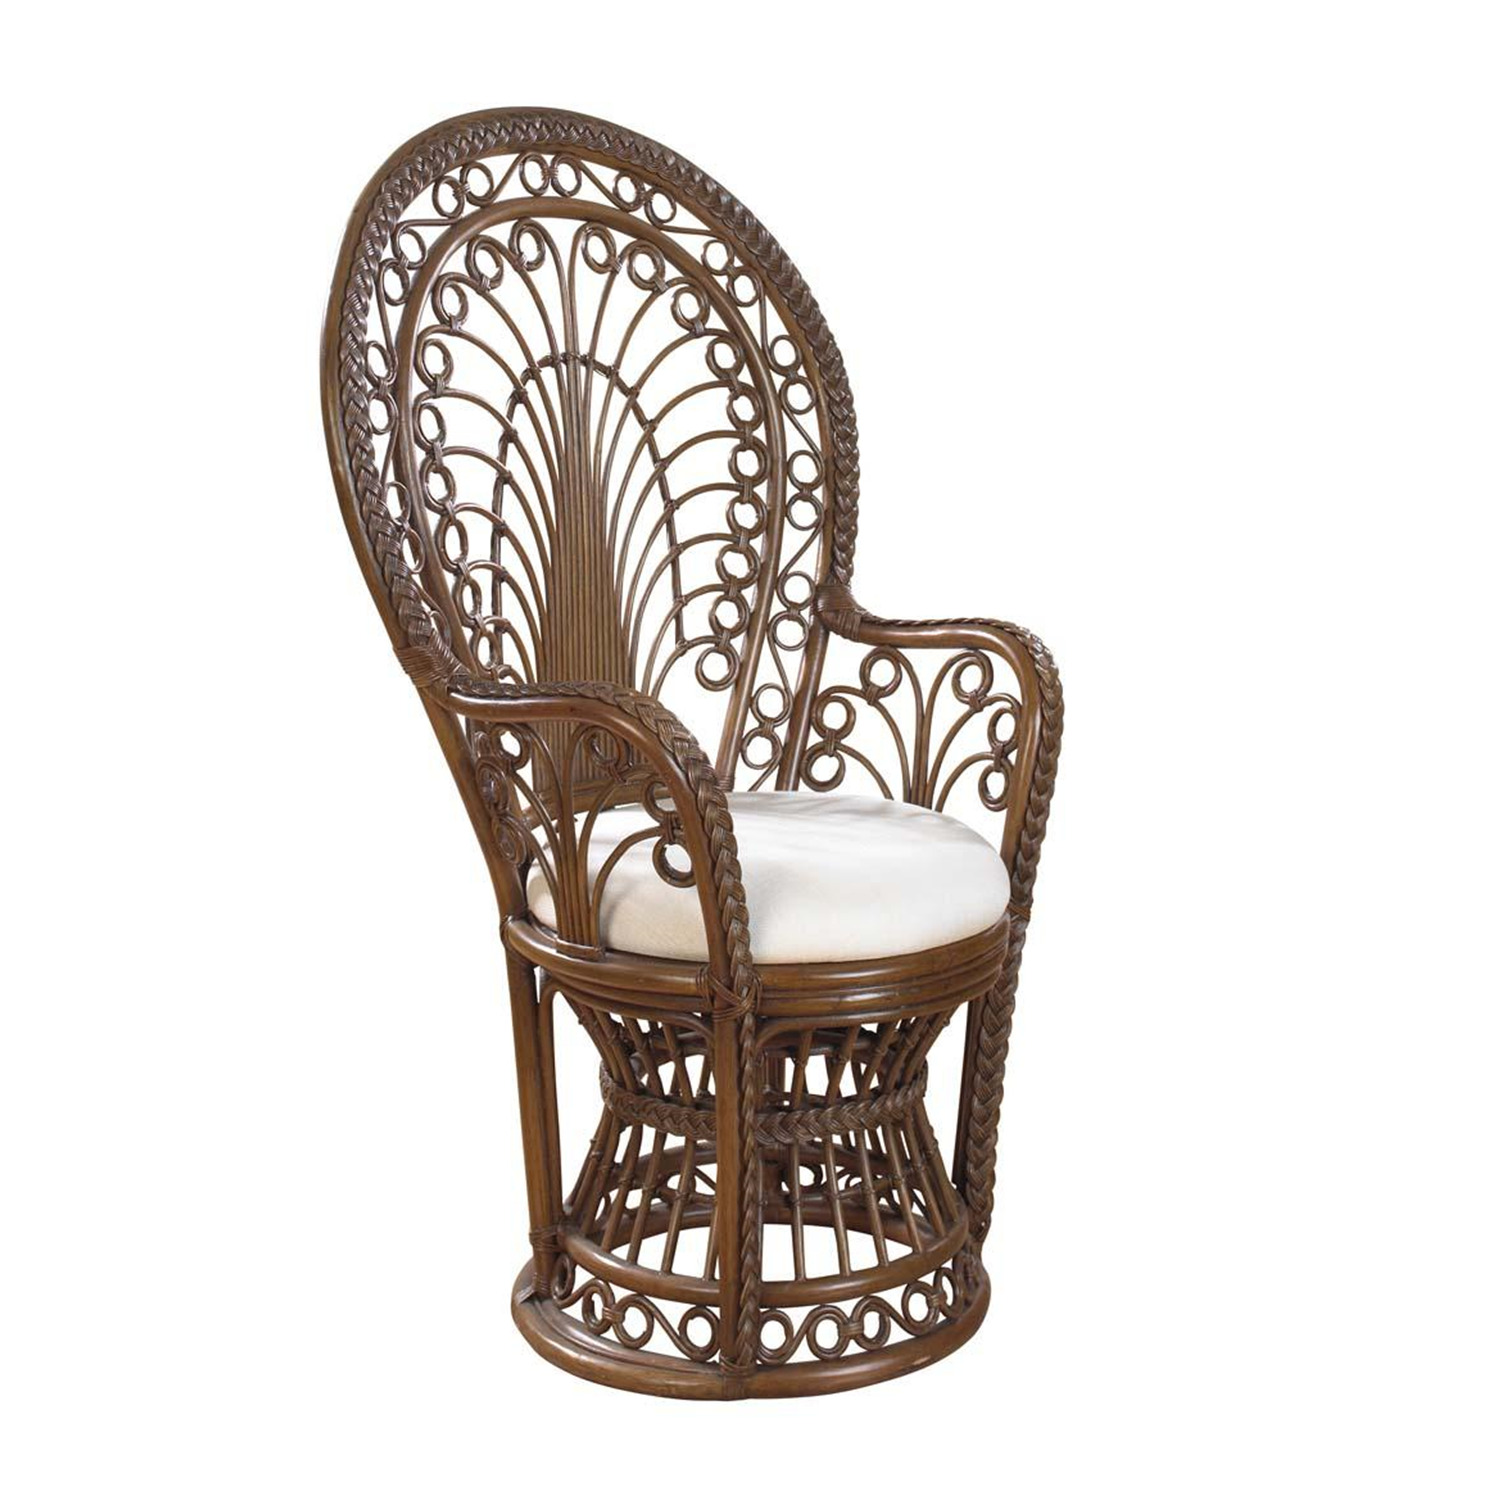 Rattan peacock chair with cushion by oj commerce 281 00